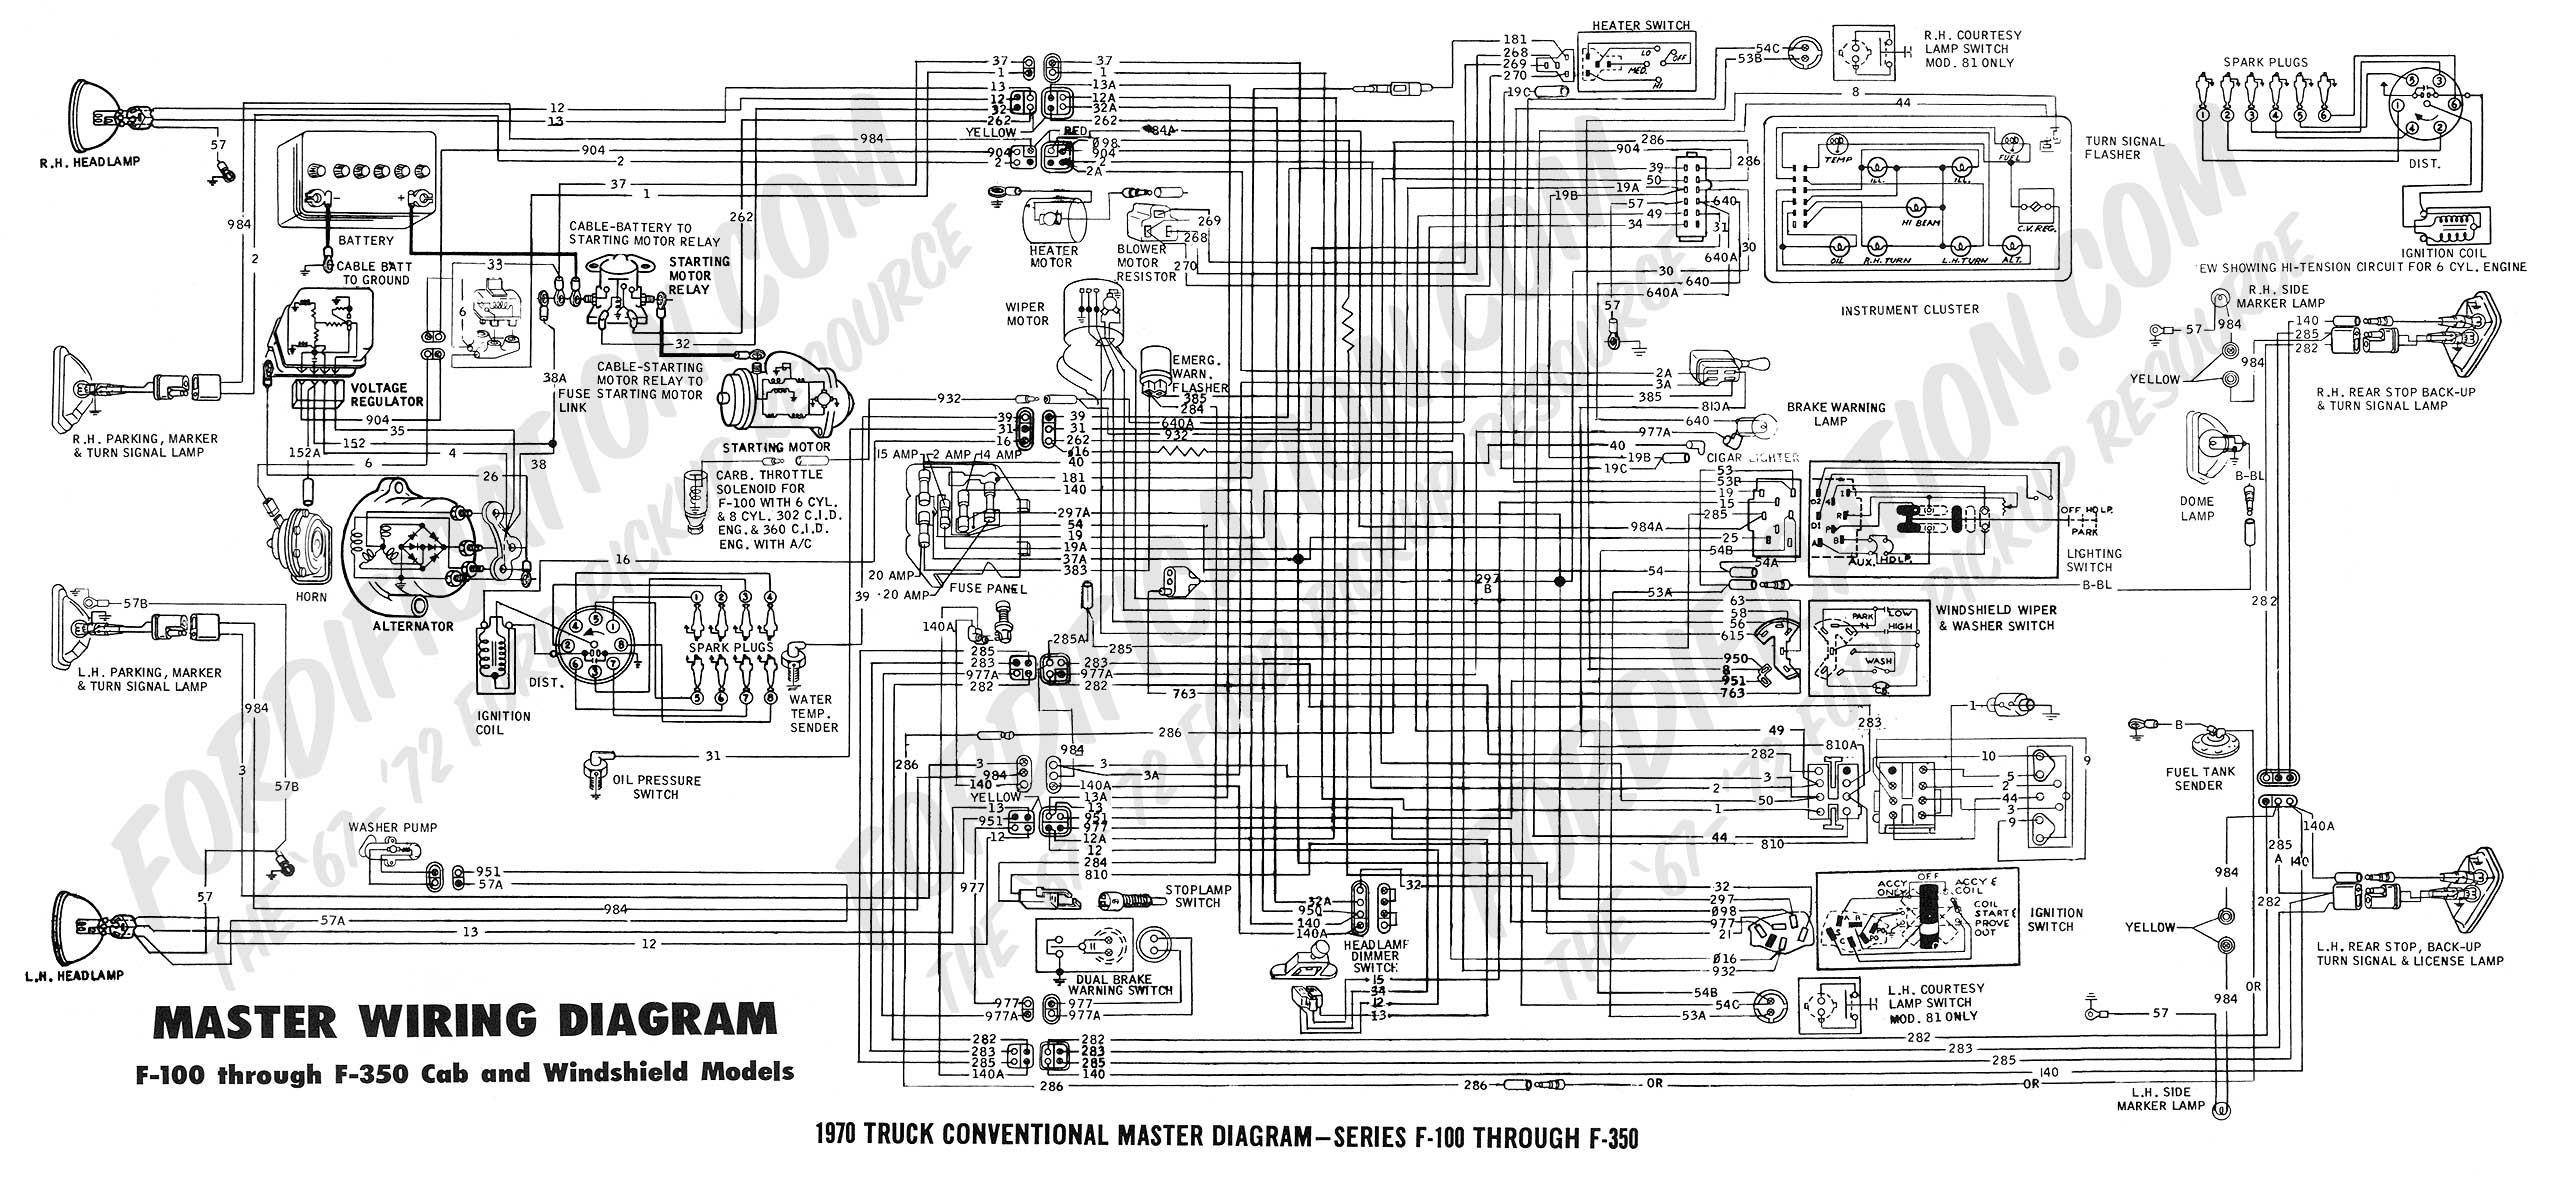 wiring diagram 70_master ford truck technical drawings and schematics section h wiring duramax 4x4 control wiring diagram at edmiracle.co